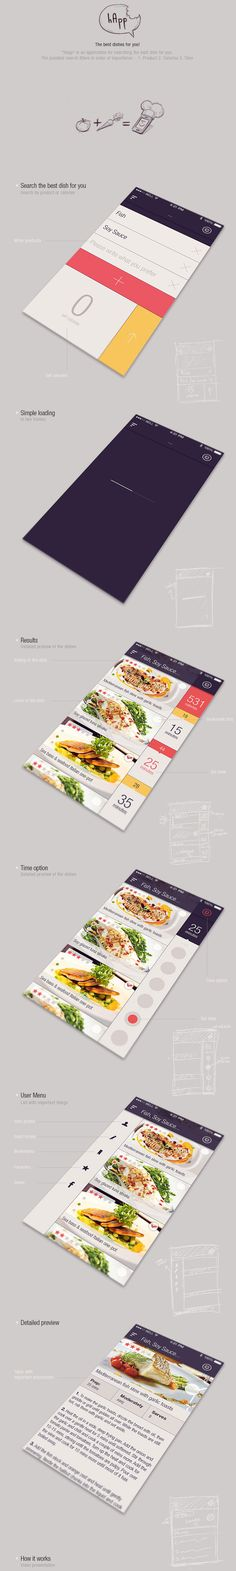 Layer by layer of a recipe app UI #mobile #ui